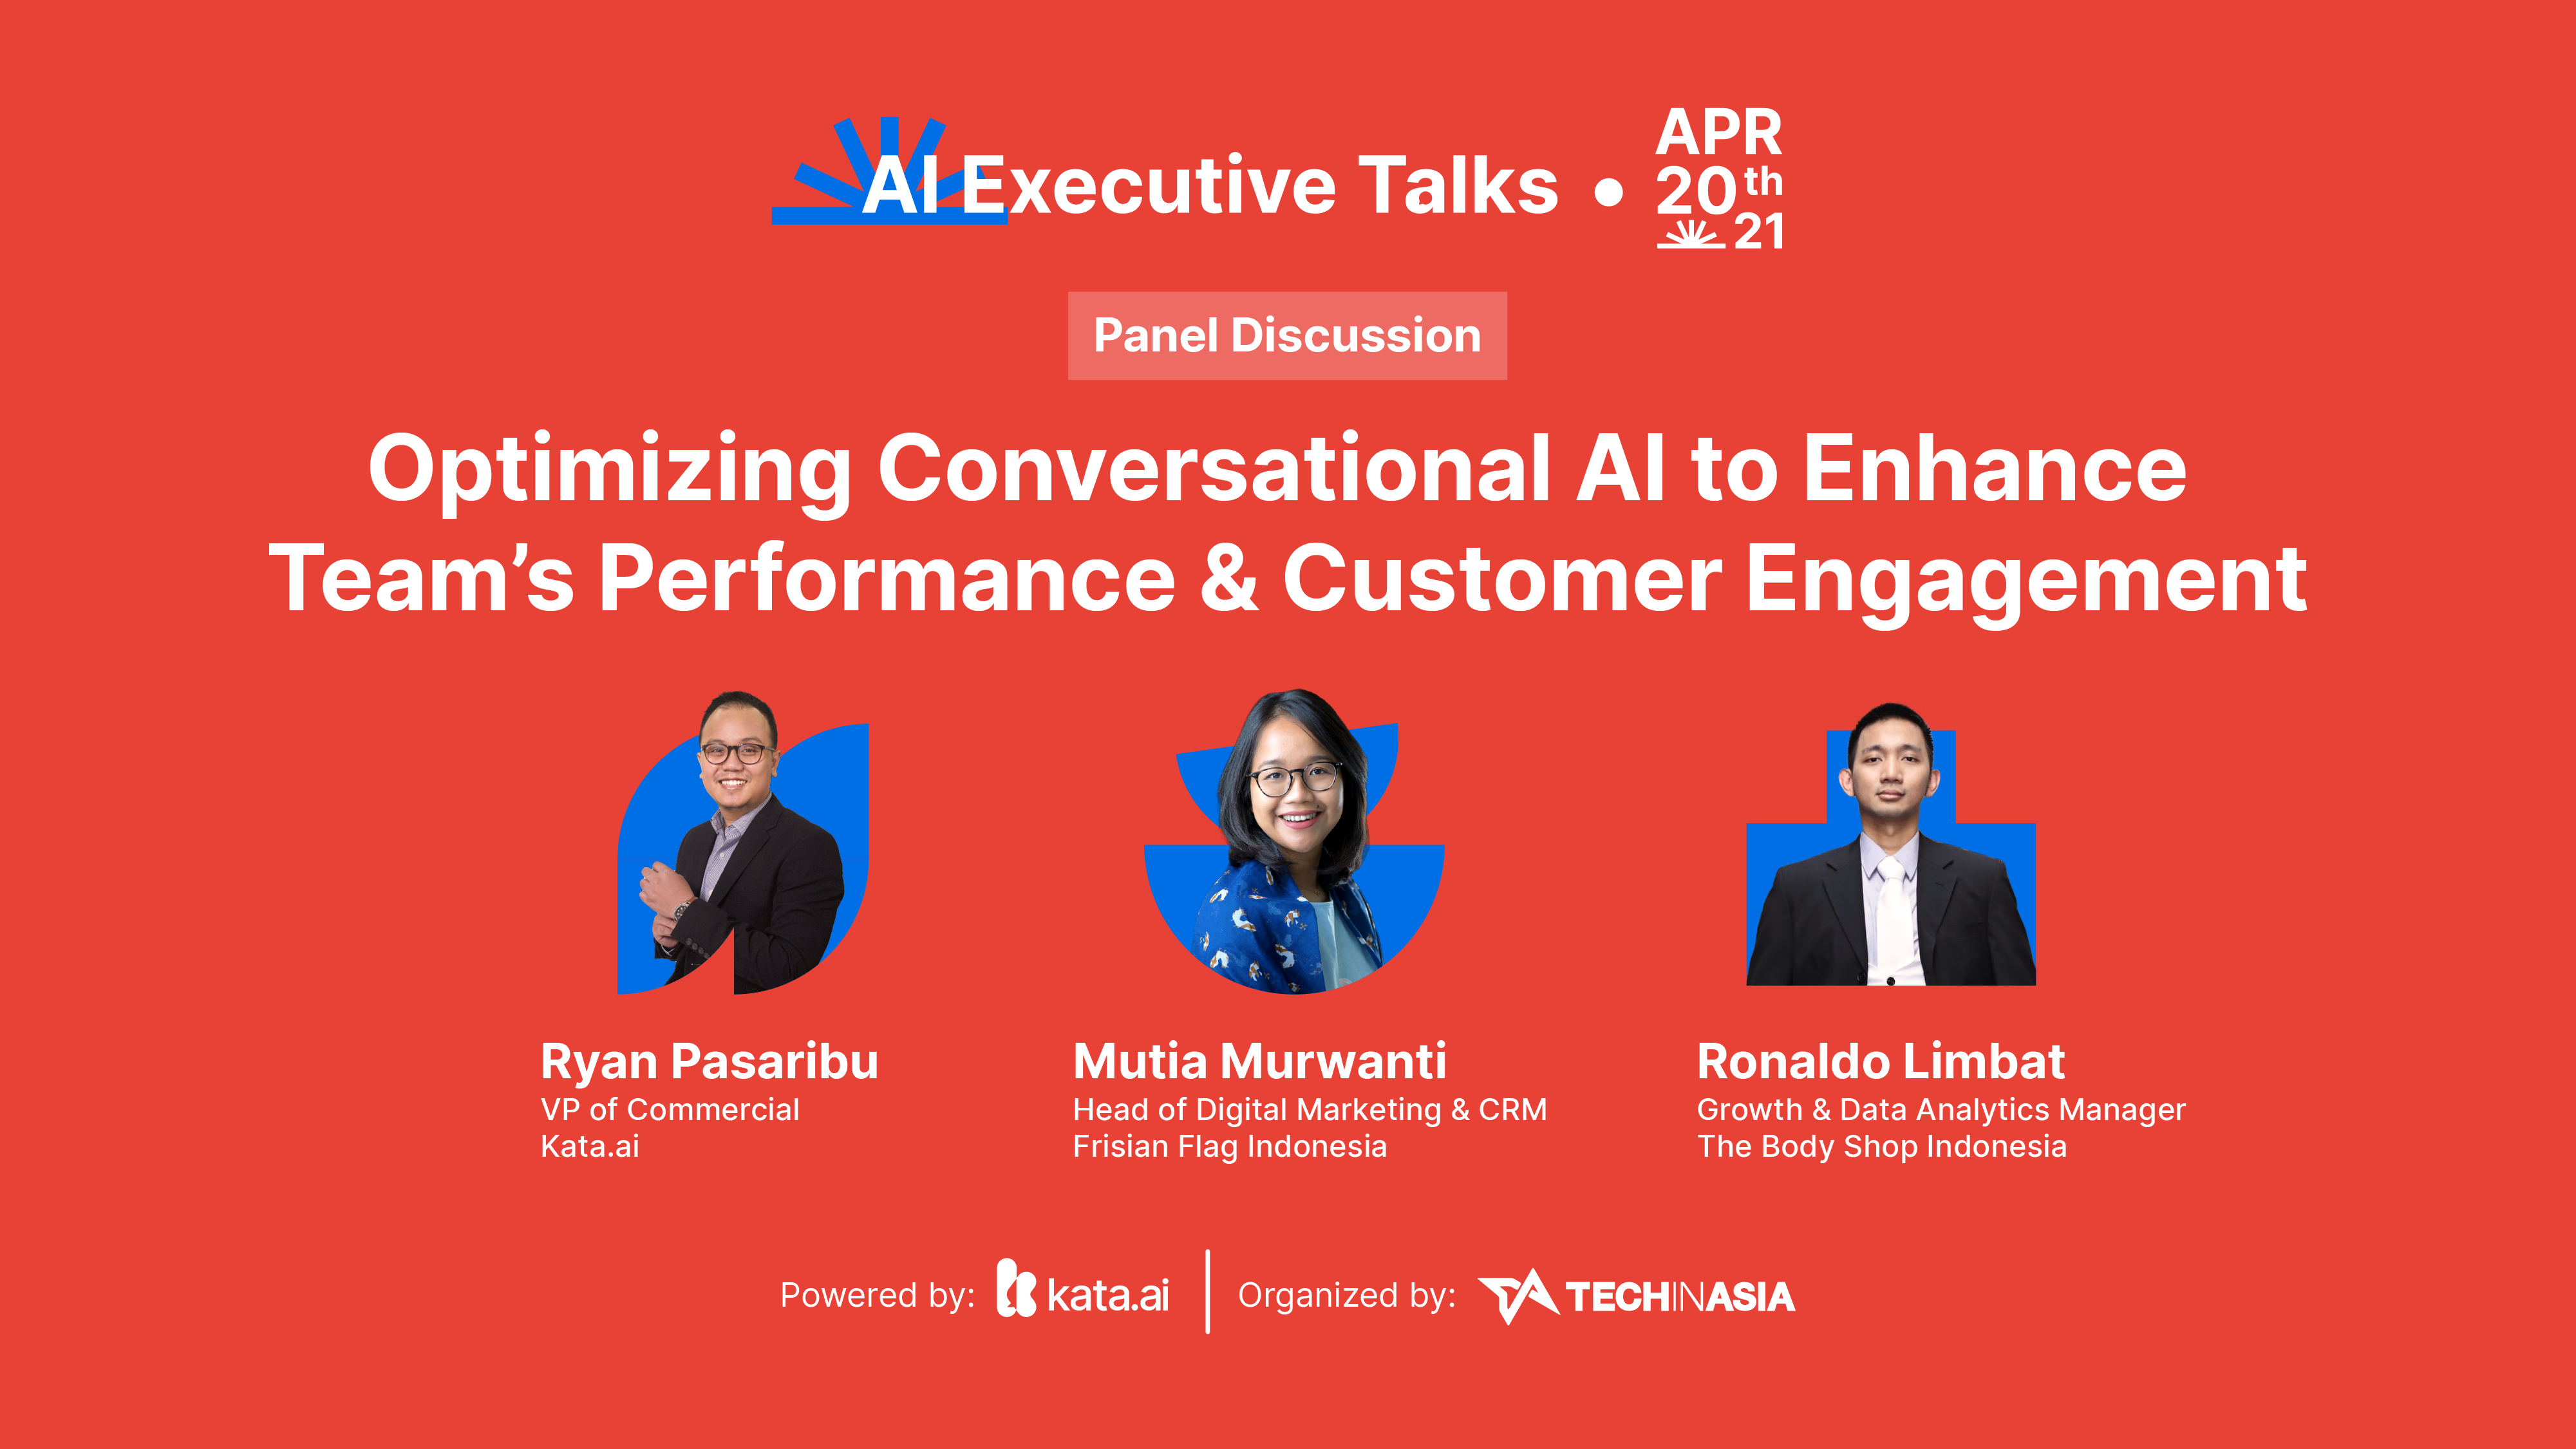 Kata.ai's VP of Commercial Ryan Pasaribu invited Muatara Murwanti, Head of Digital Marketing and CRM at Frisian Flag Indonesia, and Ronaldo Limbat, Growth and Data Analytics Manager at The Body Shop Indonesia, to discuss optimizing conversational AI to enhance team's performance and customer engagement for the second panel discussion of Kata.ai's AI Executive Talks event.